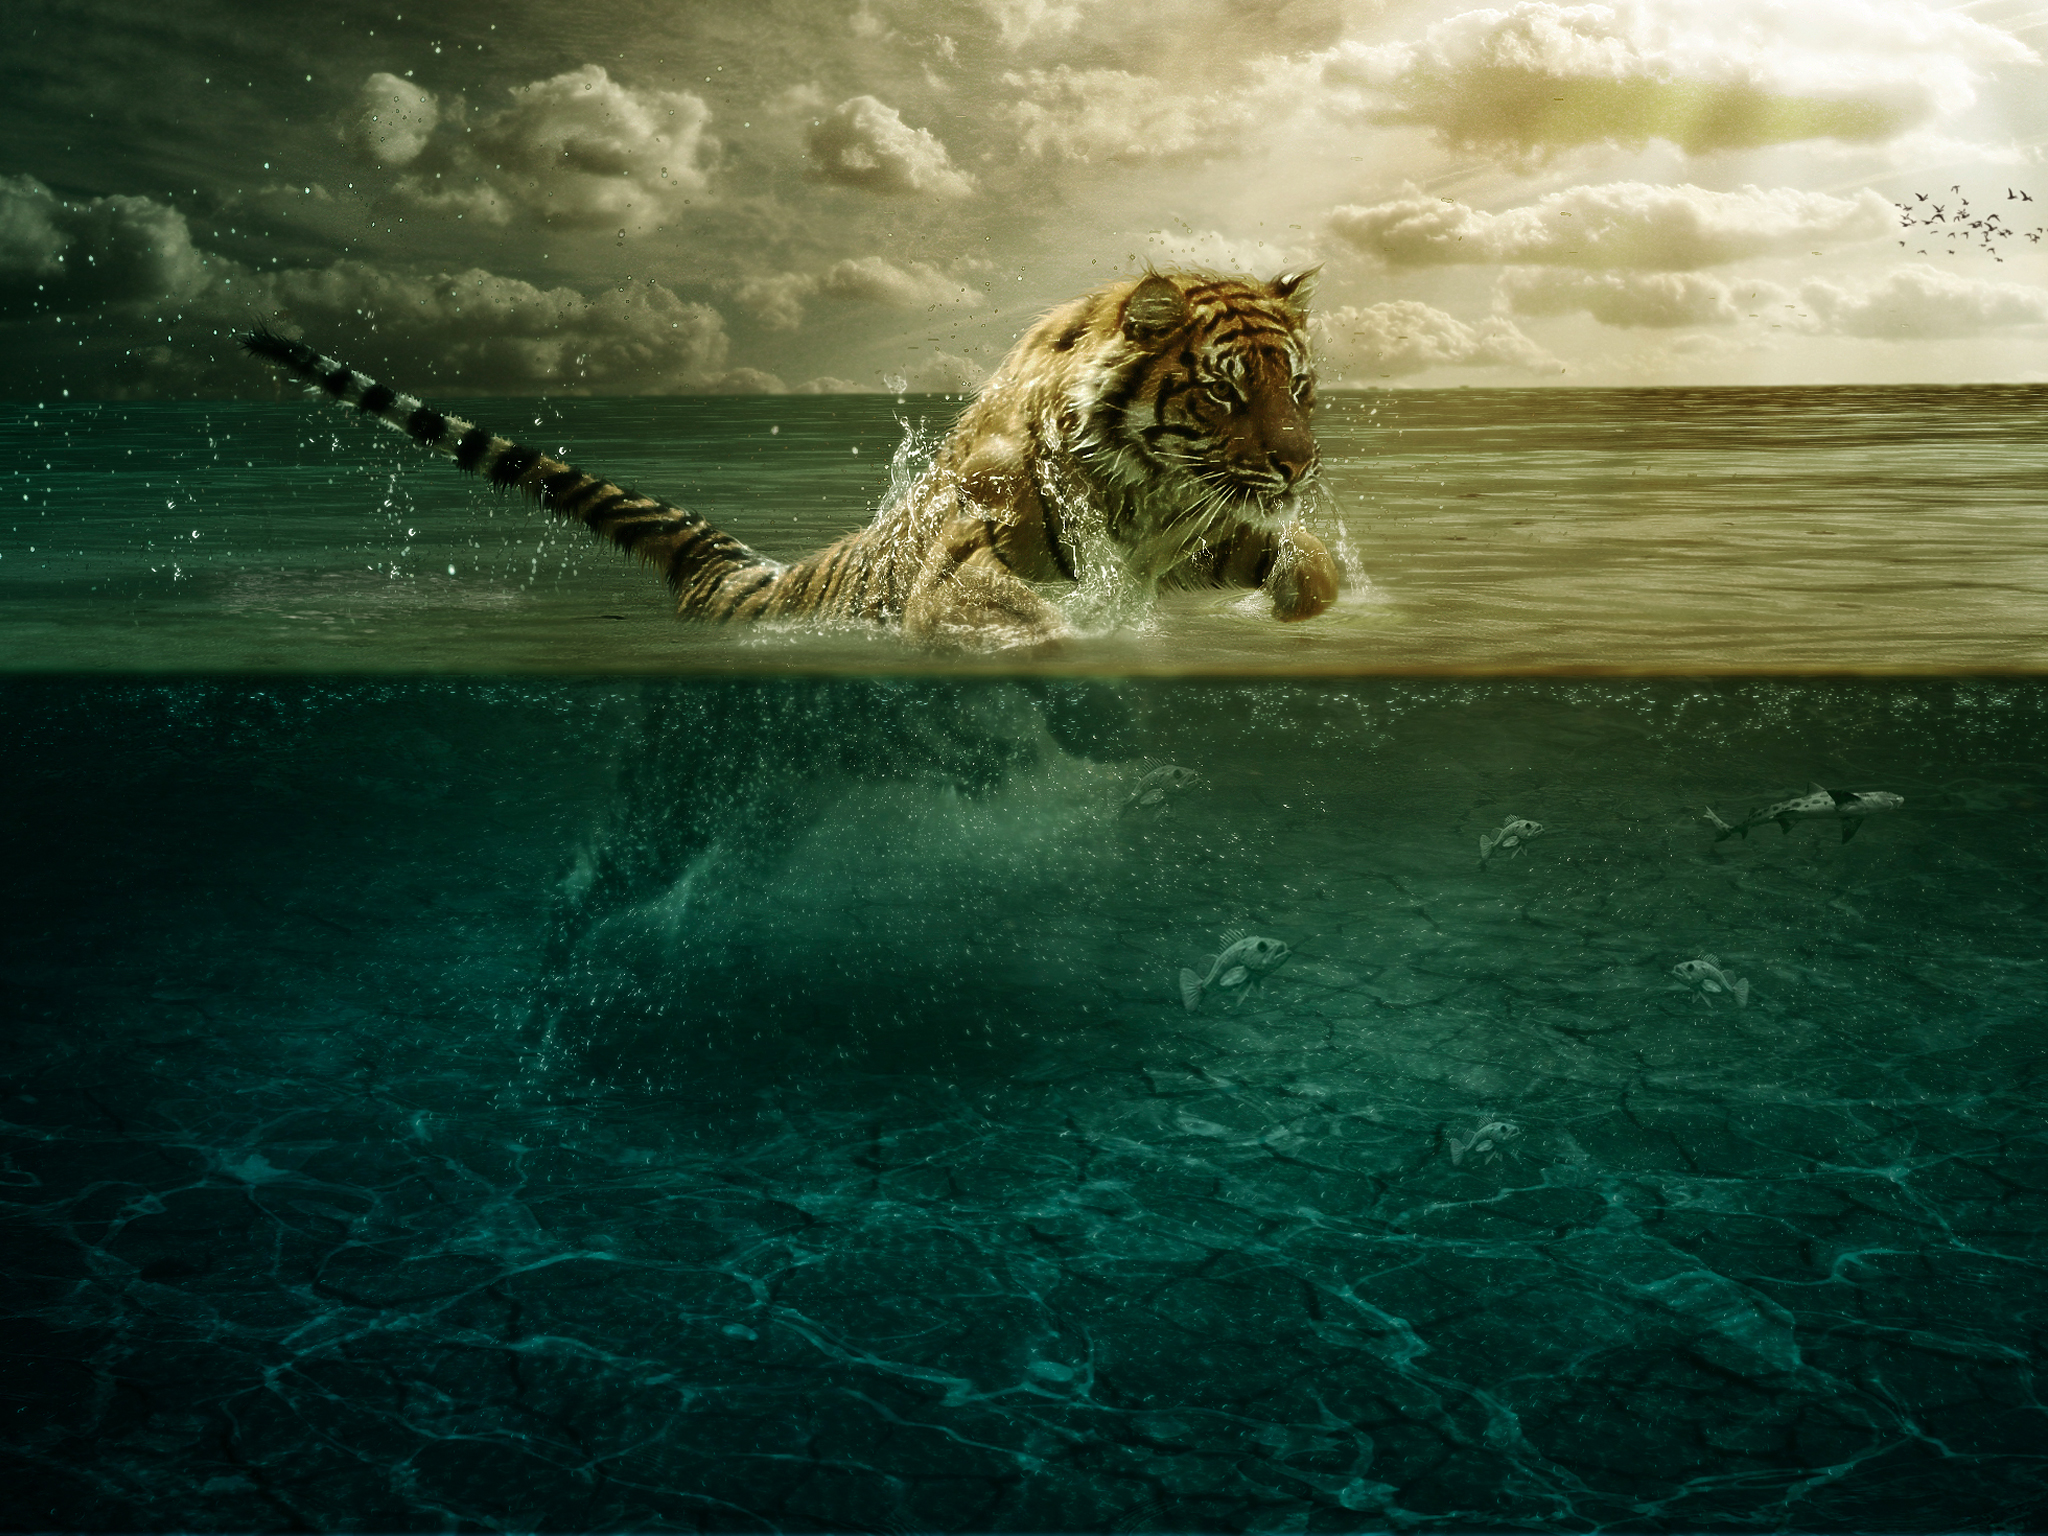 Ipad Wallpaper For Iphone X 8 7 6: Lion VS Fish Wallpaper For IPhone X, 8, 7, 6